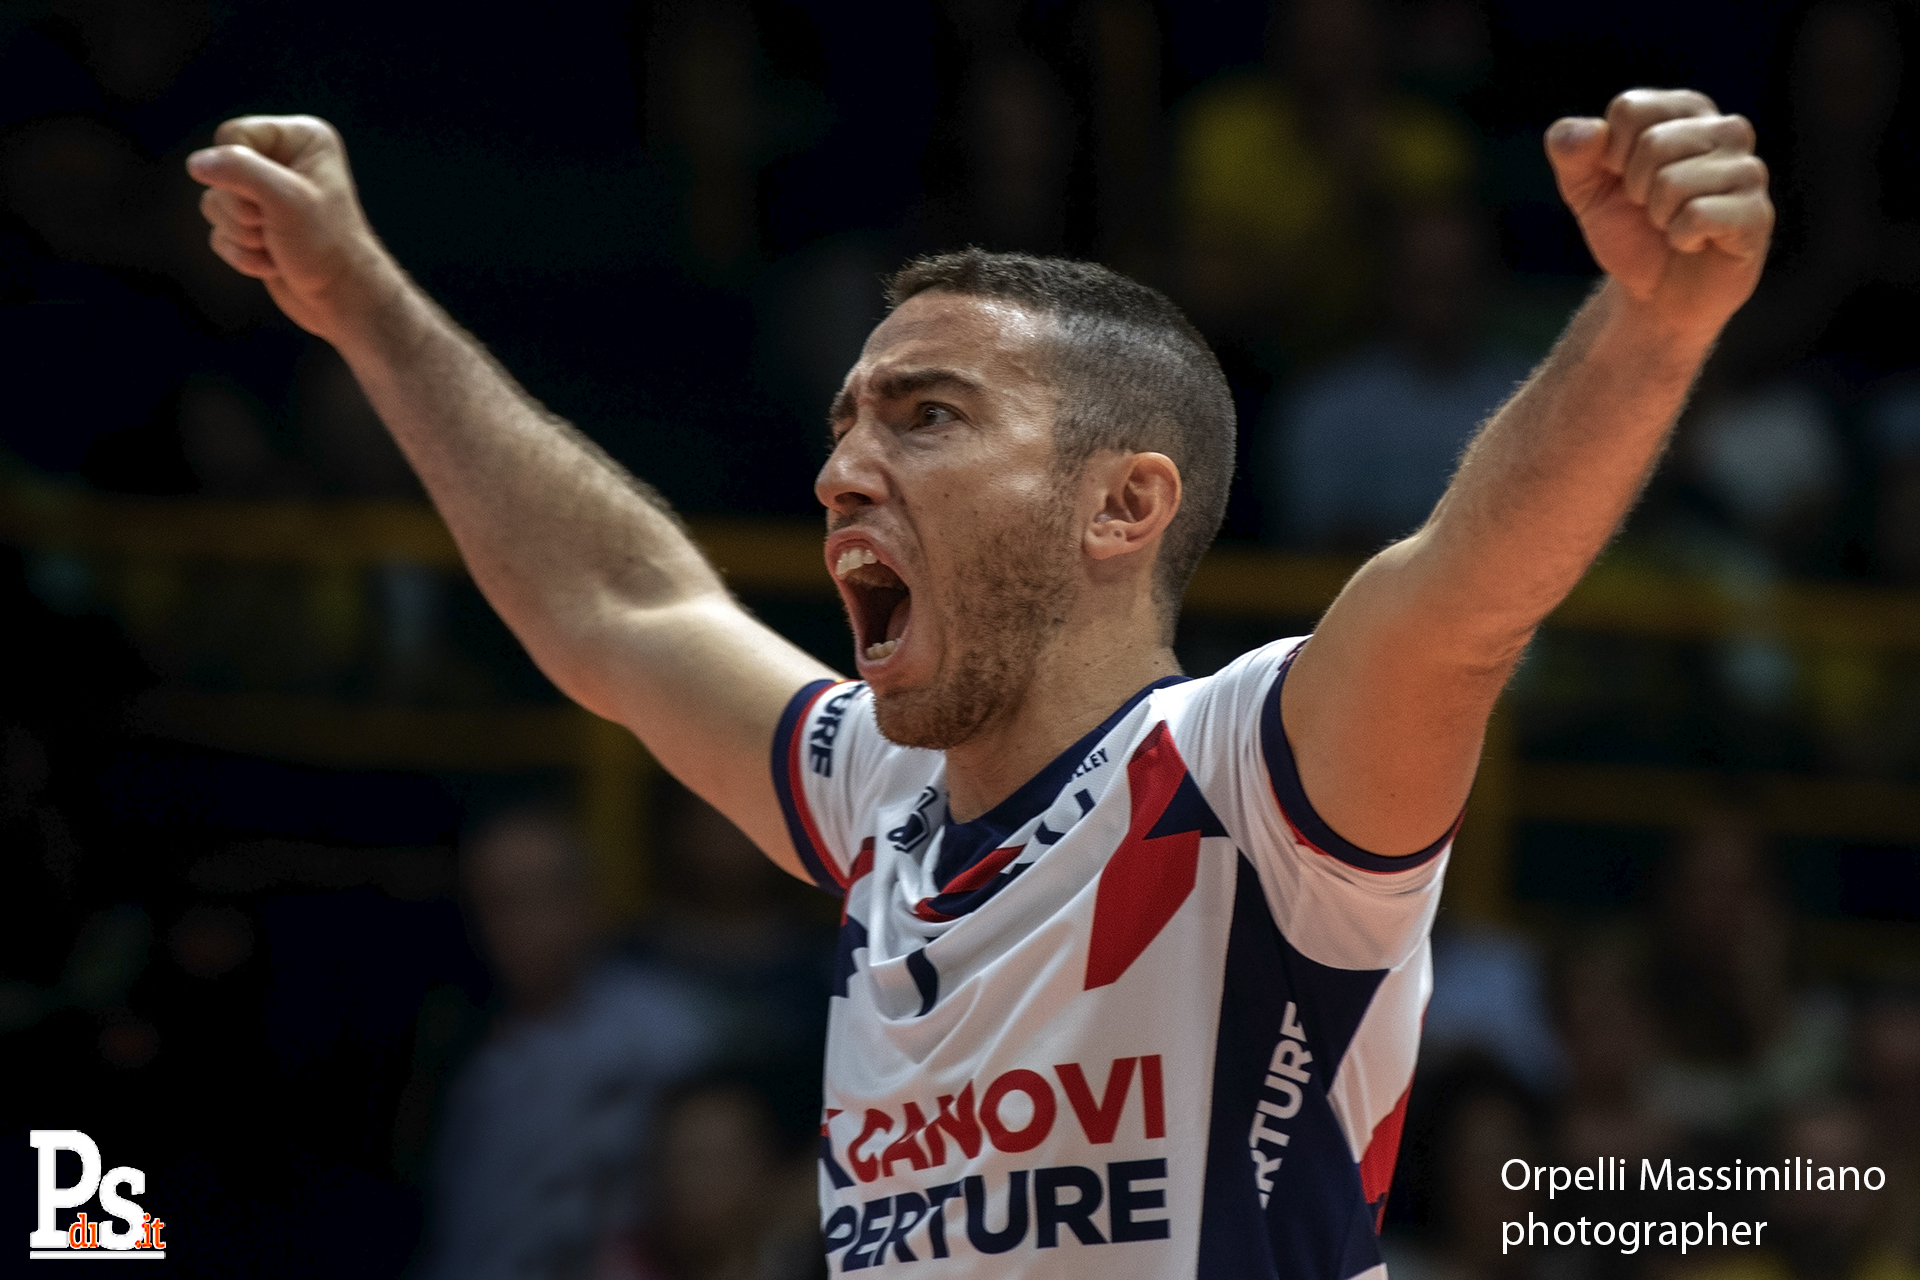 Modena Volley, intervista Salvatore Rossini